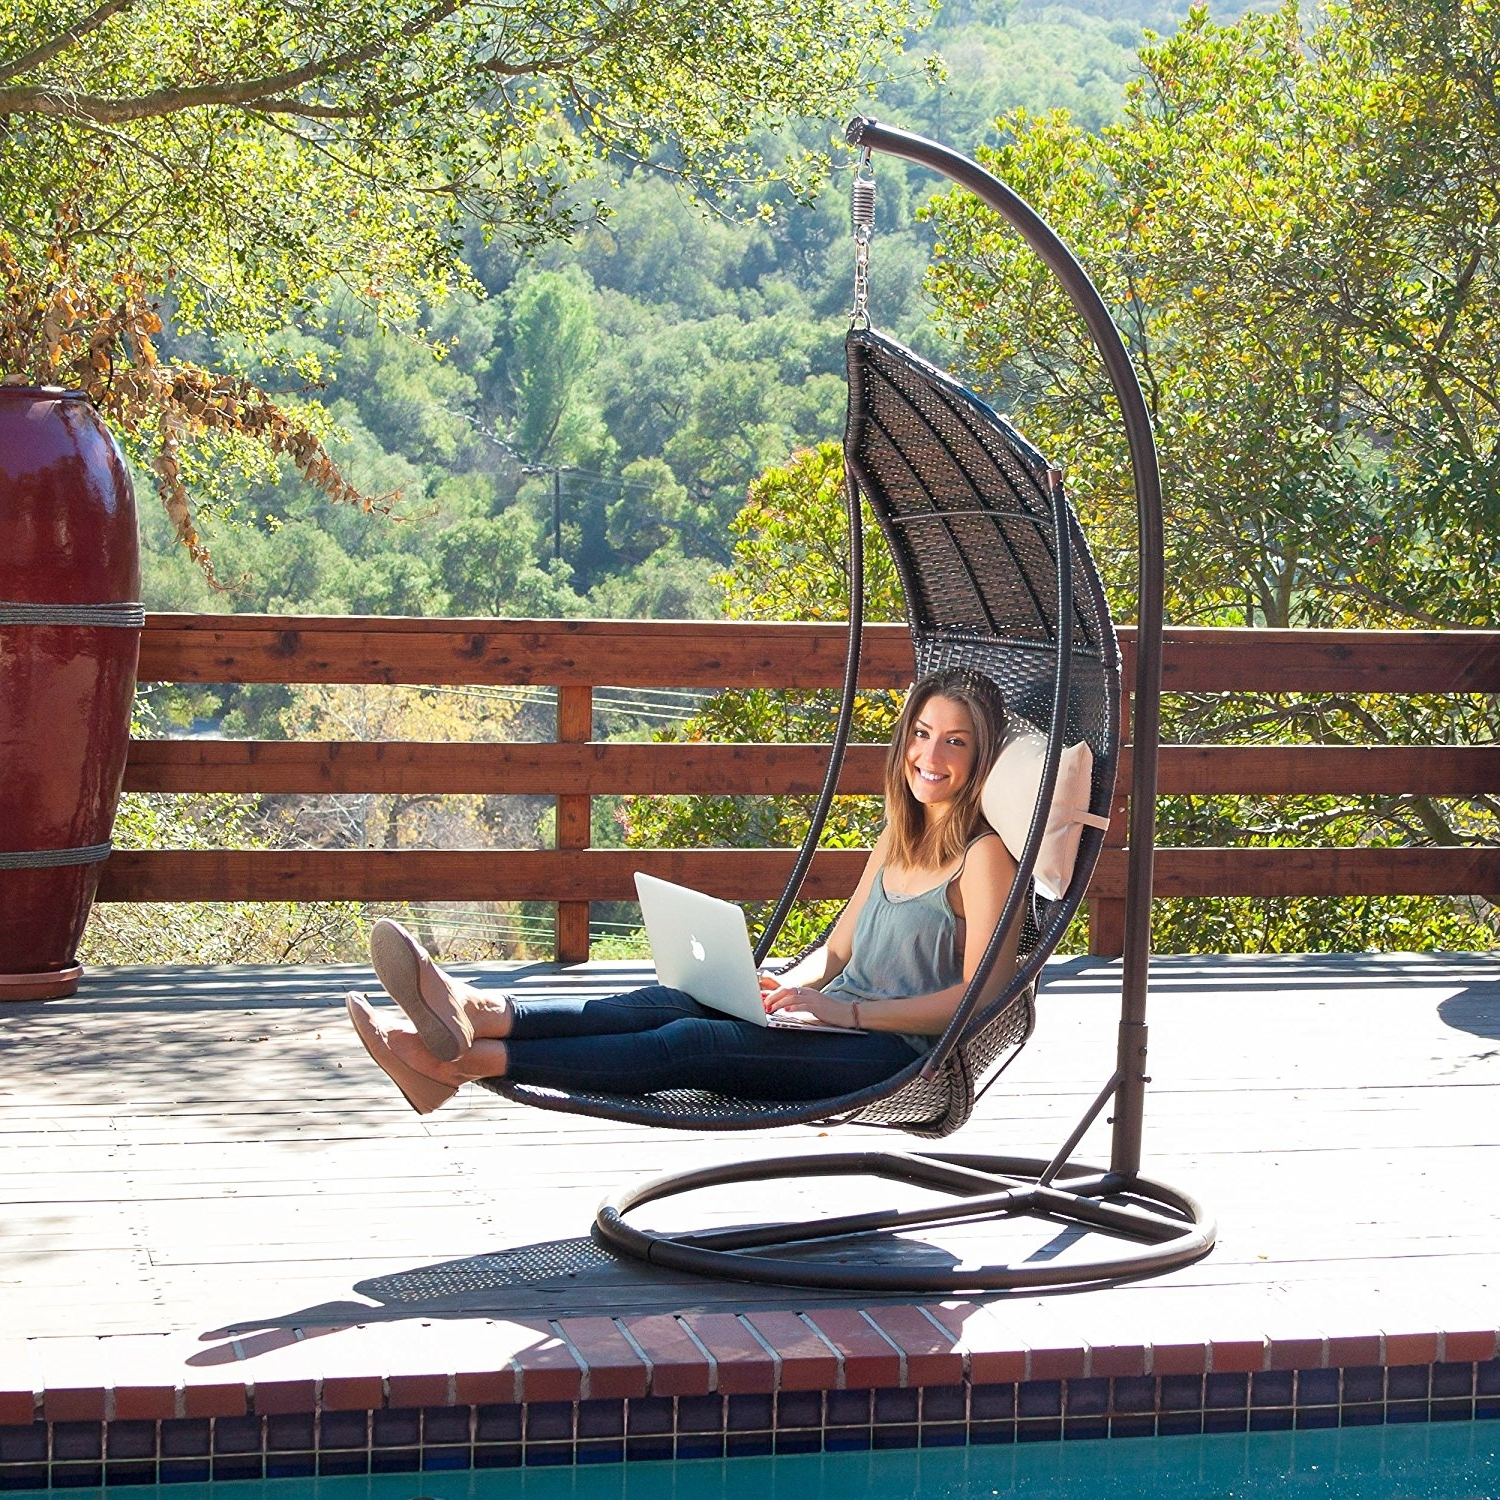 Amazon: Outdoor Brown Wicker Hanging Chair With Cushions Inside Favorite Chaise Lounge Swing Chairs (View 2 of 15)